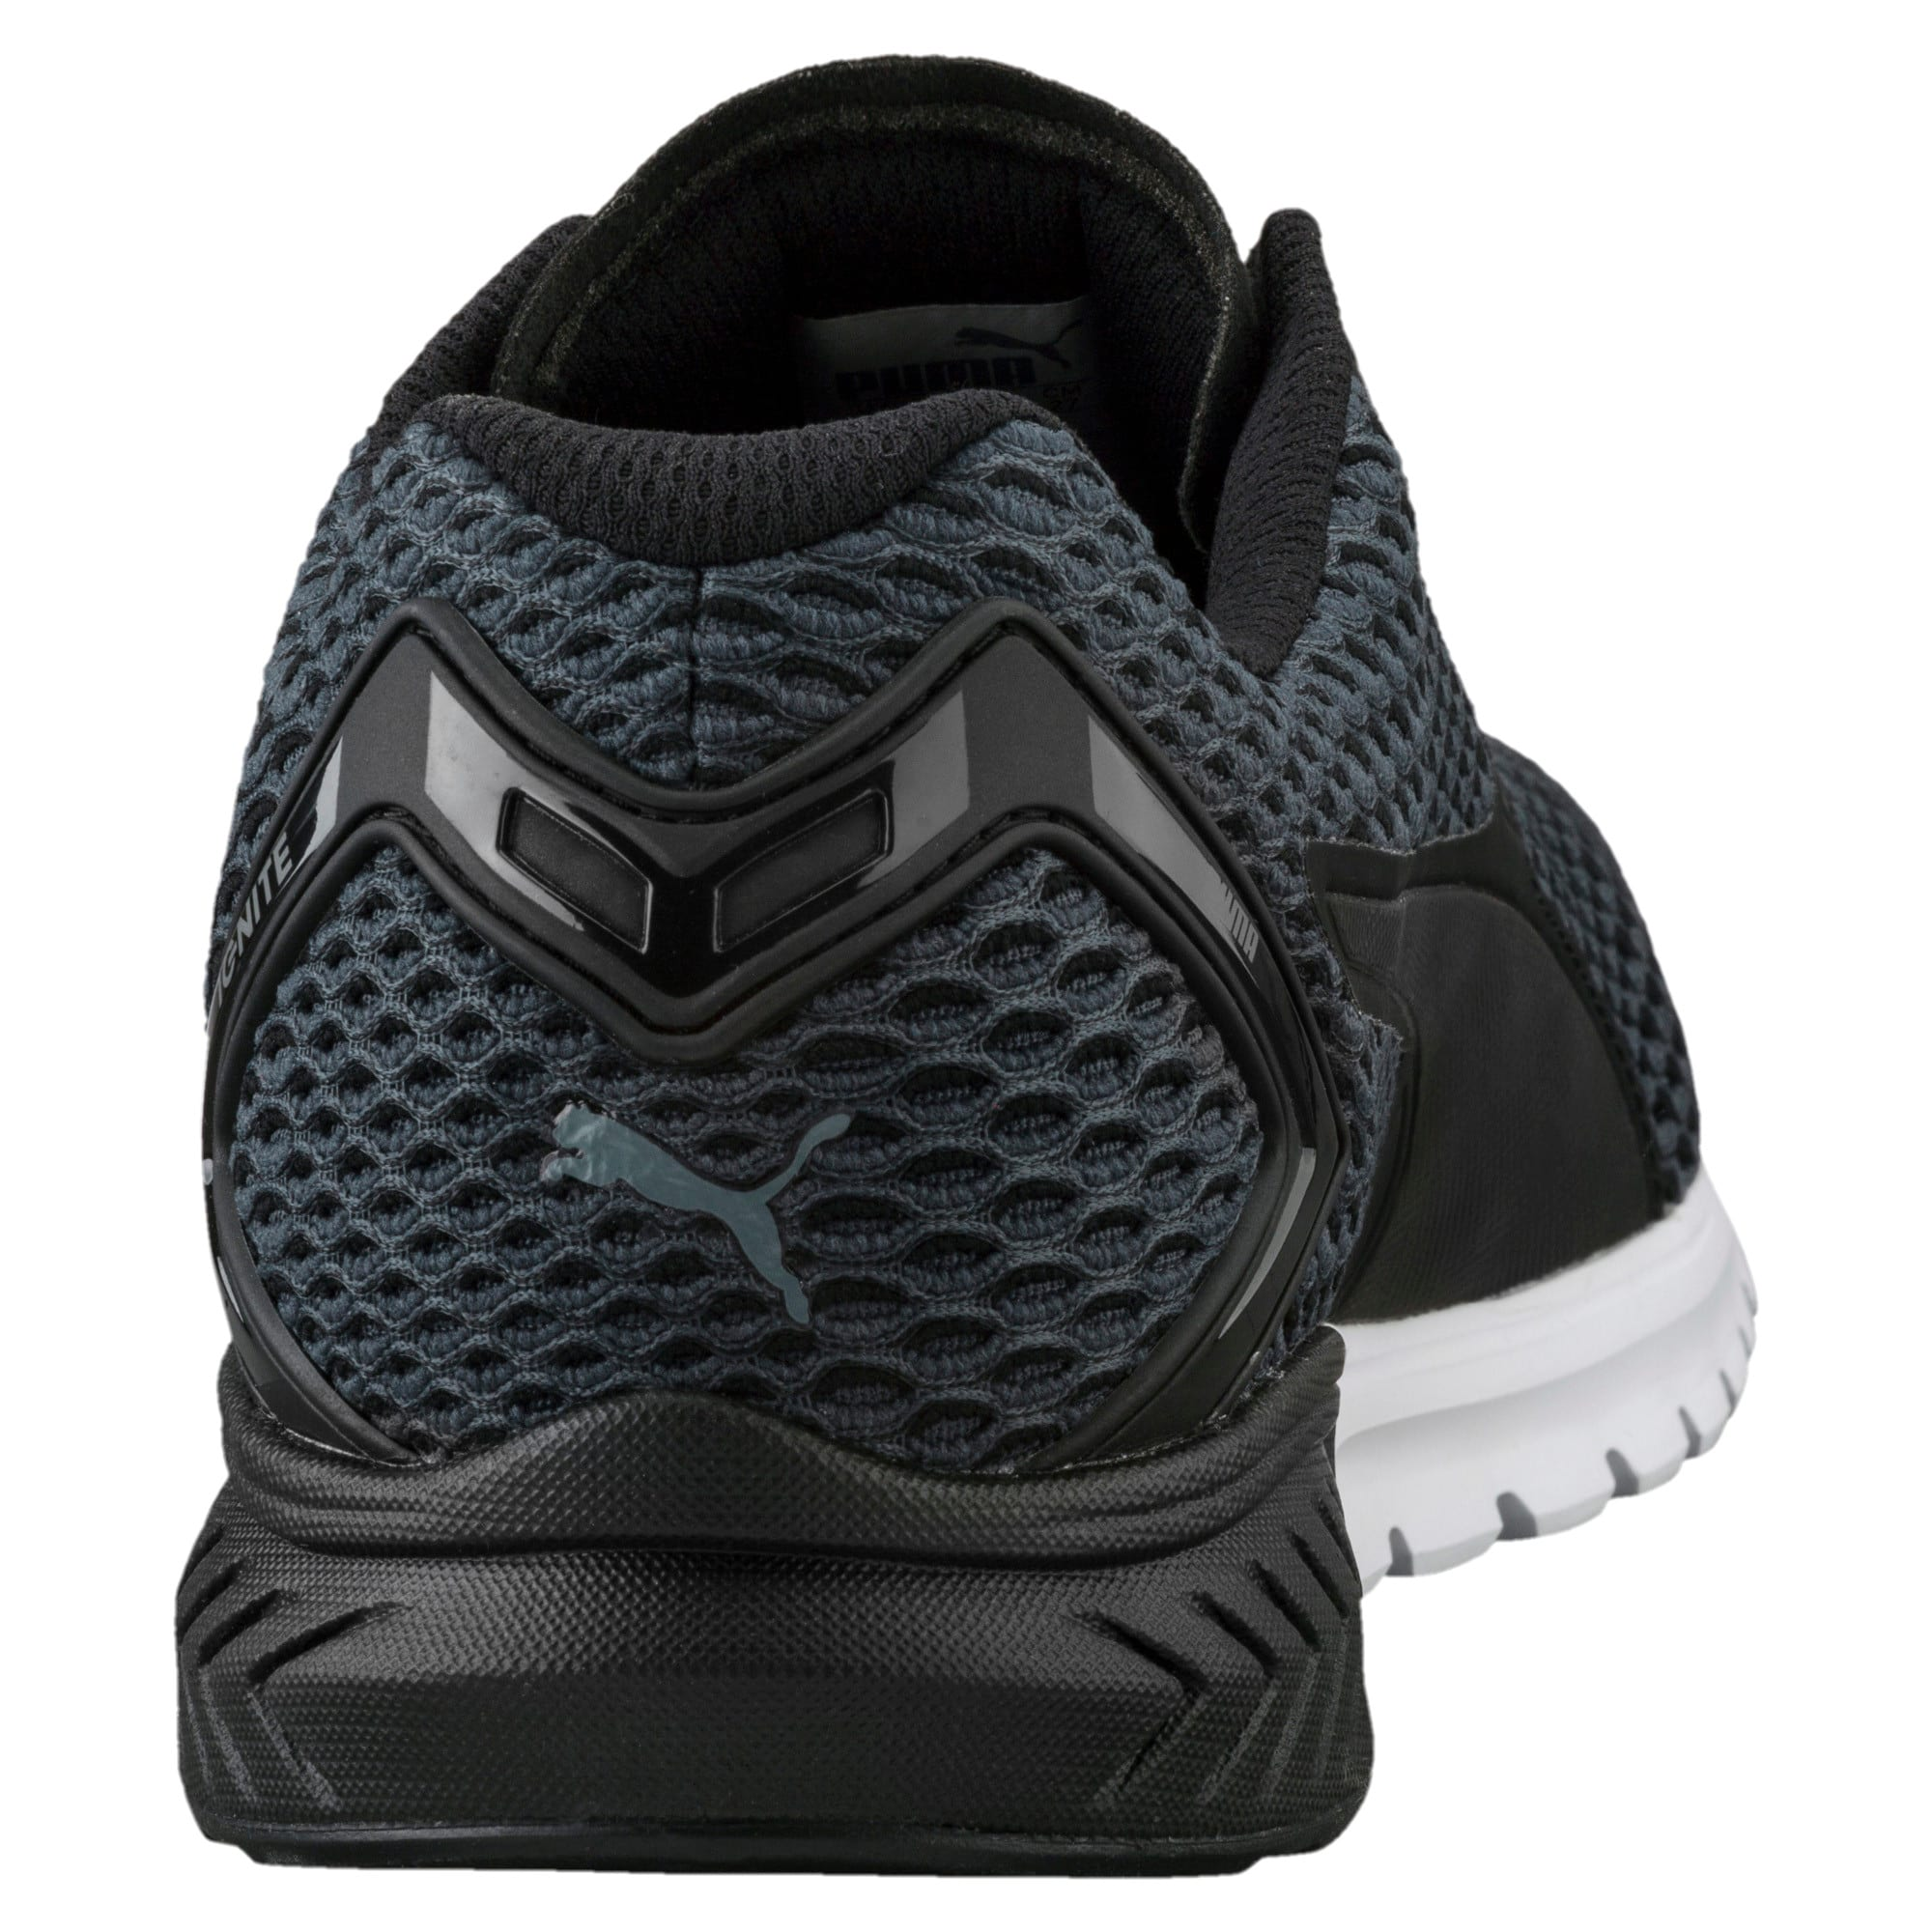 Thumbnail 3 of IGNITE Dual New Core Men's Training Shoes, Puma Black-Asphalt, medium-IND